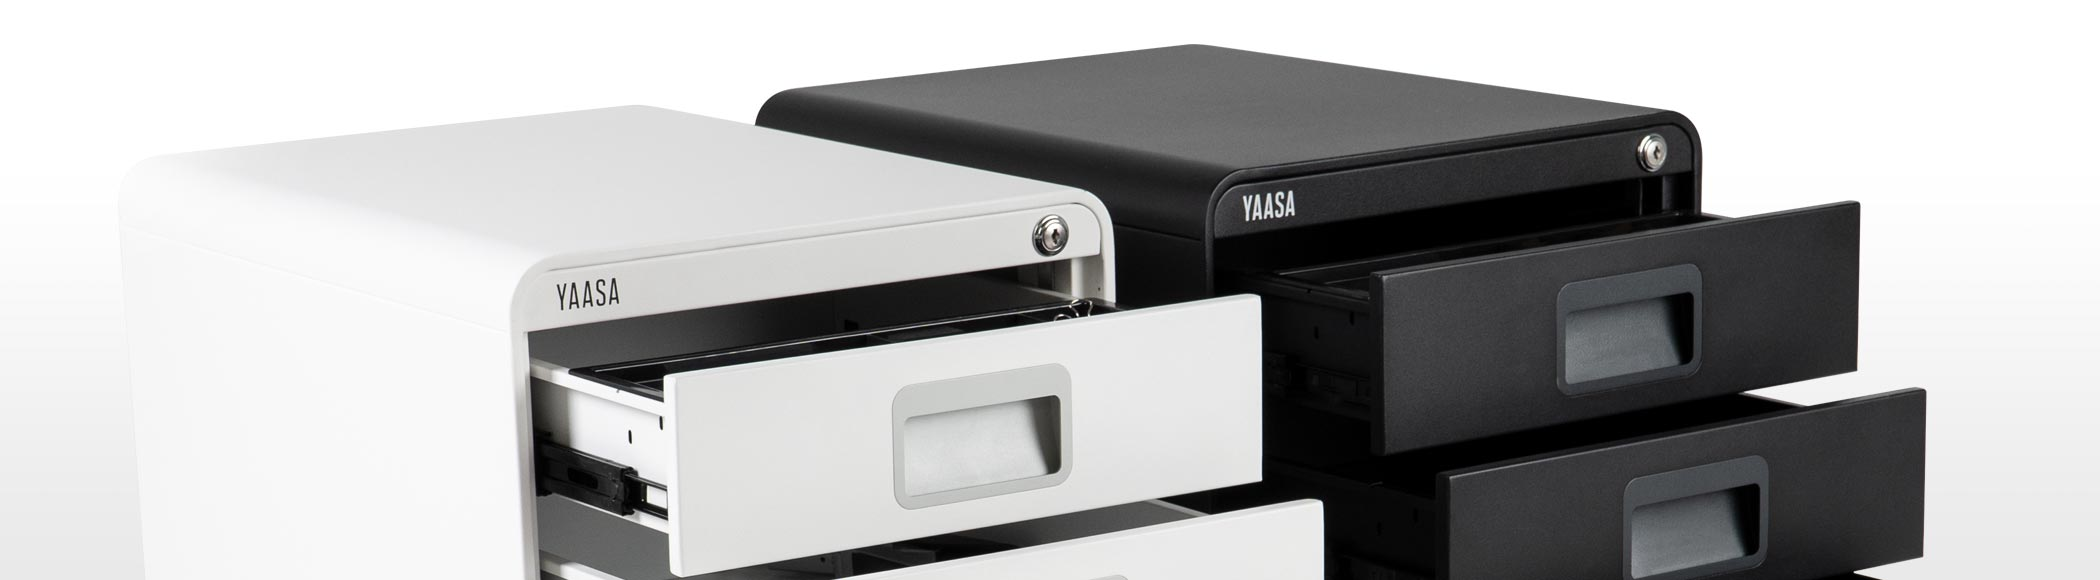 The file cabinet by Yaasa keeps your workplace organized and tidy.